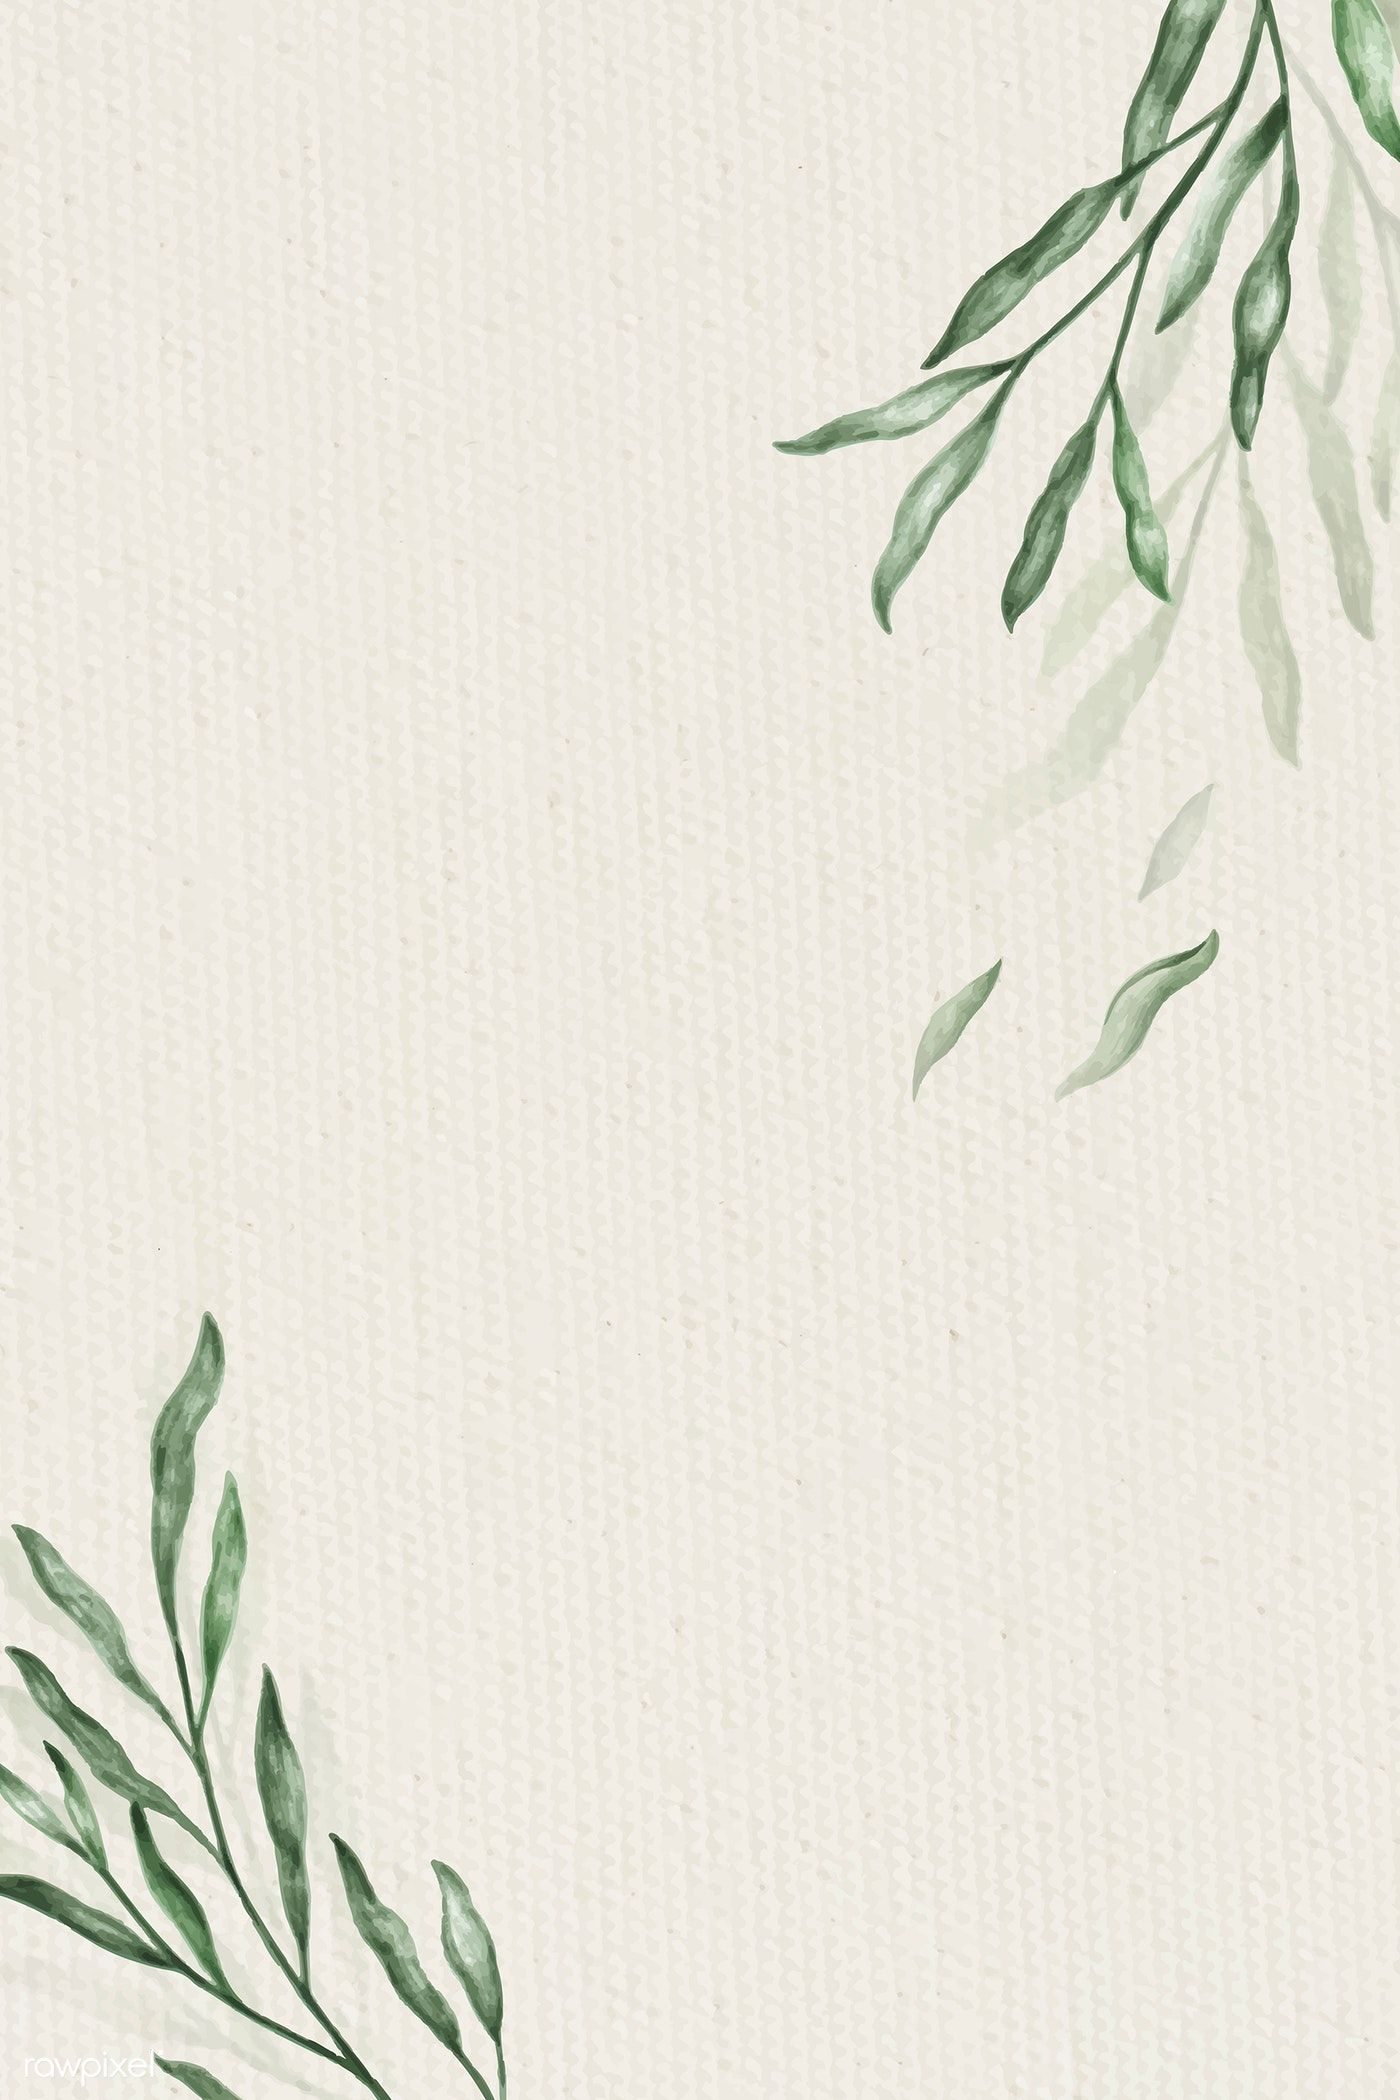 Download Premium Illustration Of Greenery Frame Illustration